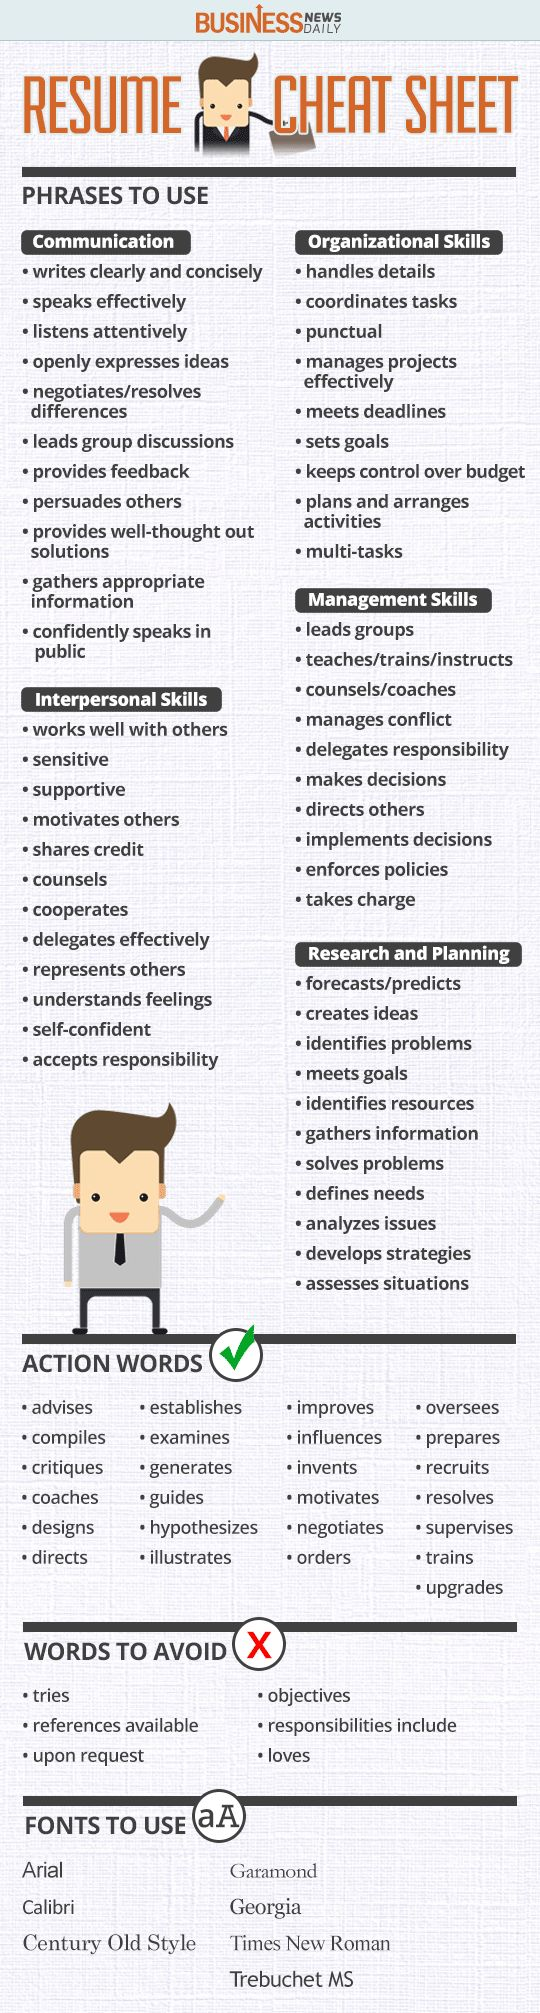 Opposenewapstandardsus  Seductive  Ideas About Resume On Pinterest  Cv Format Resume  With Lovely Resume Cheat Sheet Infographic Andrews Almost Done With A Complete Unit On Employment Which With Agreeable Putting Volunteer Work On Resume Also Sample Resume For Forklift Operator In Addition Cfa Level  Candidate Resume And Resume Objective For Part Time Job As Well As Resume Heading Format Additionally Disney College Program Resume From Pinterestcom With Opposenewapstandardsus  Lovely  Ideas About Resume On Pinterest  Cv Format Resume  With Agreeable Resume Cheat Sheet Infographic Andrews Almost Done With A Complete Unit On Employment Which And Seductive Putting Volunteer Work On Resume Also Sample Resume For Forklift Operator In Addition Cfa Level  Candidate Resume From Pinterestcom